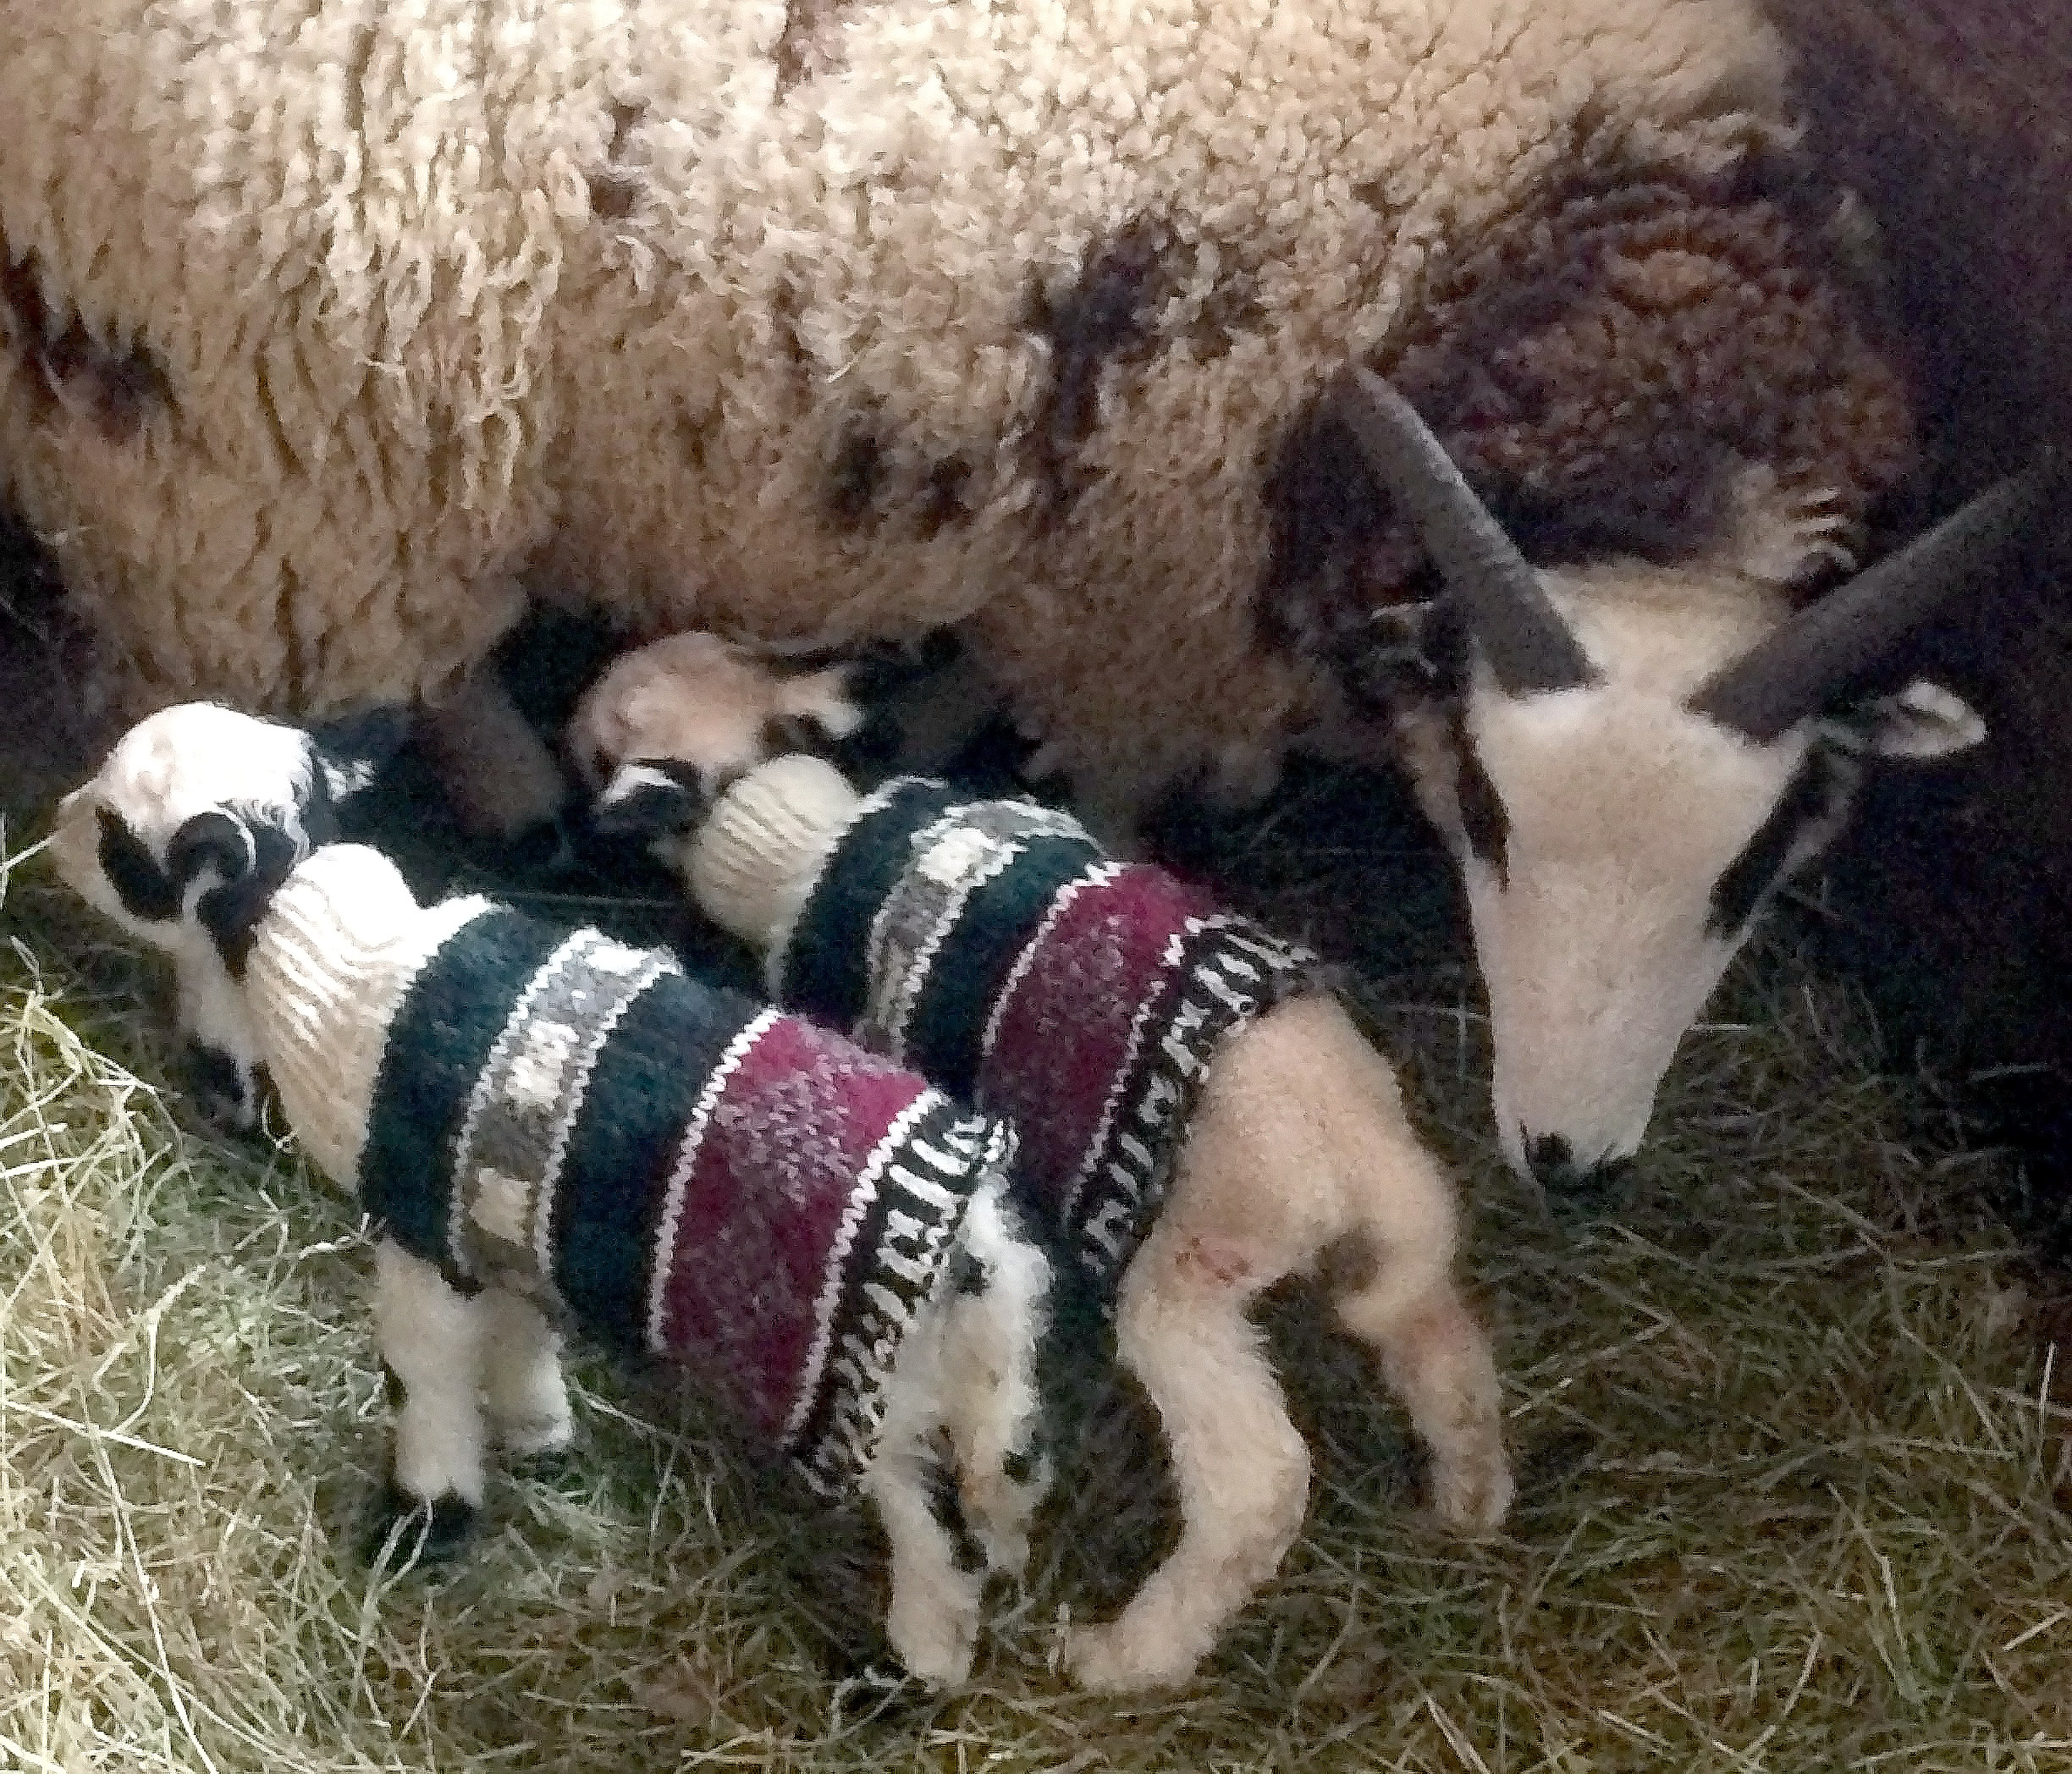 Lambs born during an extended cold spell needed a bit of extra help so CeCe cut down an old sweater to keep them warm.